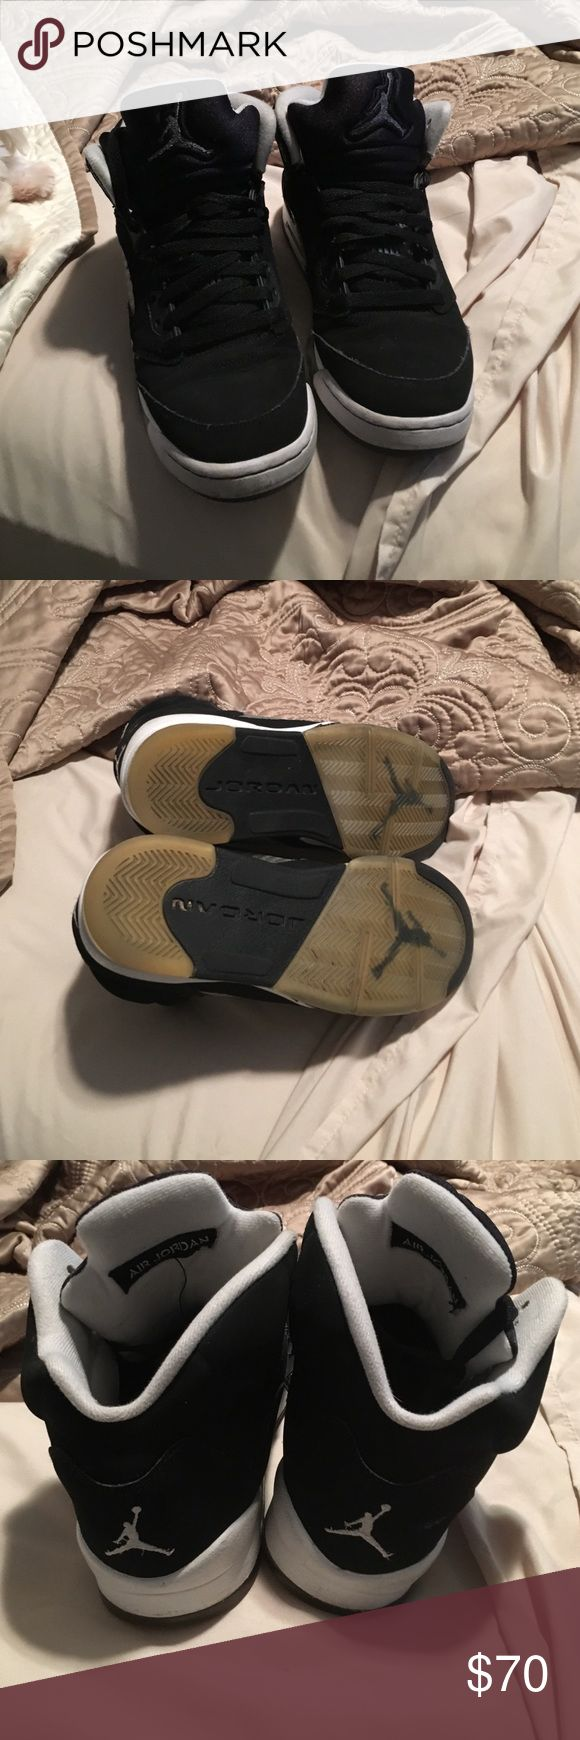 Air Jordan Retro Oreo 5 Have gotten some good use but are still very wearable and comfy. Buy some sole cleaner and the yellow fade will turn to its original icy color. (THIS IS THE ONLY PAIR, SEVERAL SIZES ARE LISTED TO SHOW THE RANGE OF SIZES IT FITS)  Size: 6 Boys/7-7.5 Womens  SMOKE FREE 🚭 HOME W/ A HYPO-ALLERGENIC DOG 🐶  *All items are washed before shipment. Jordan Shoes Sneakers